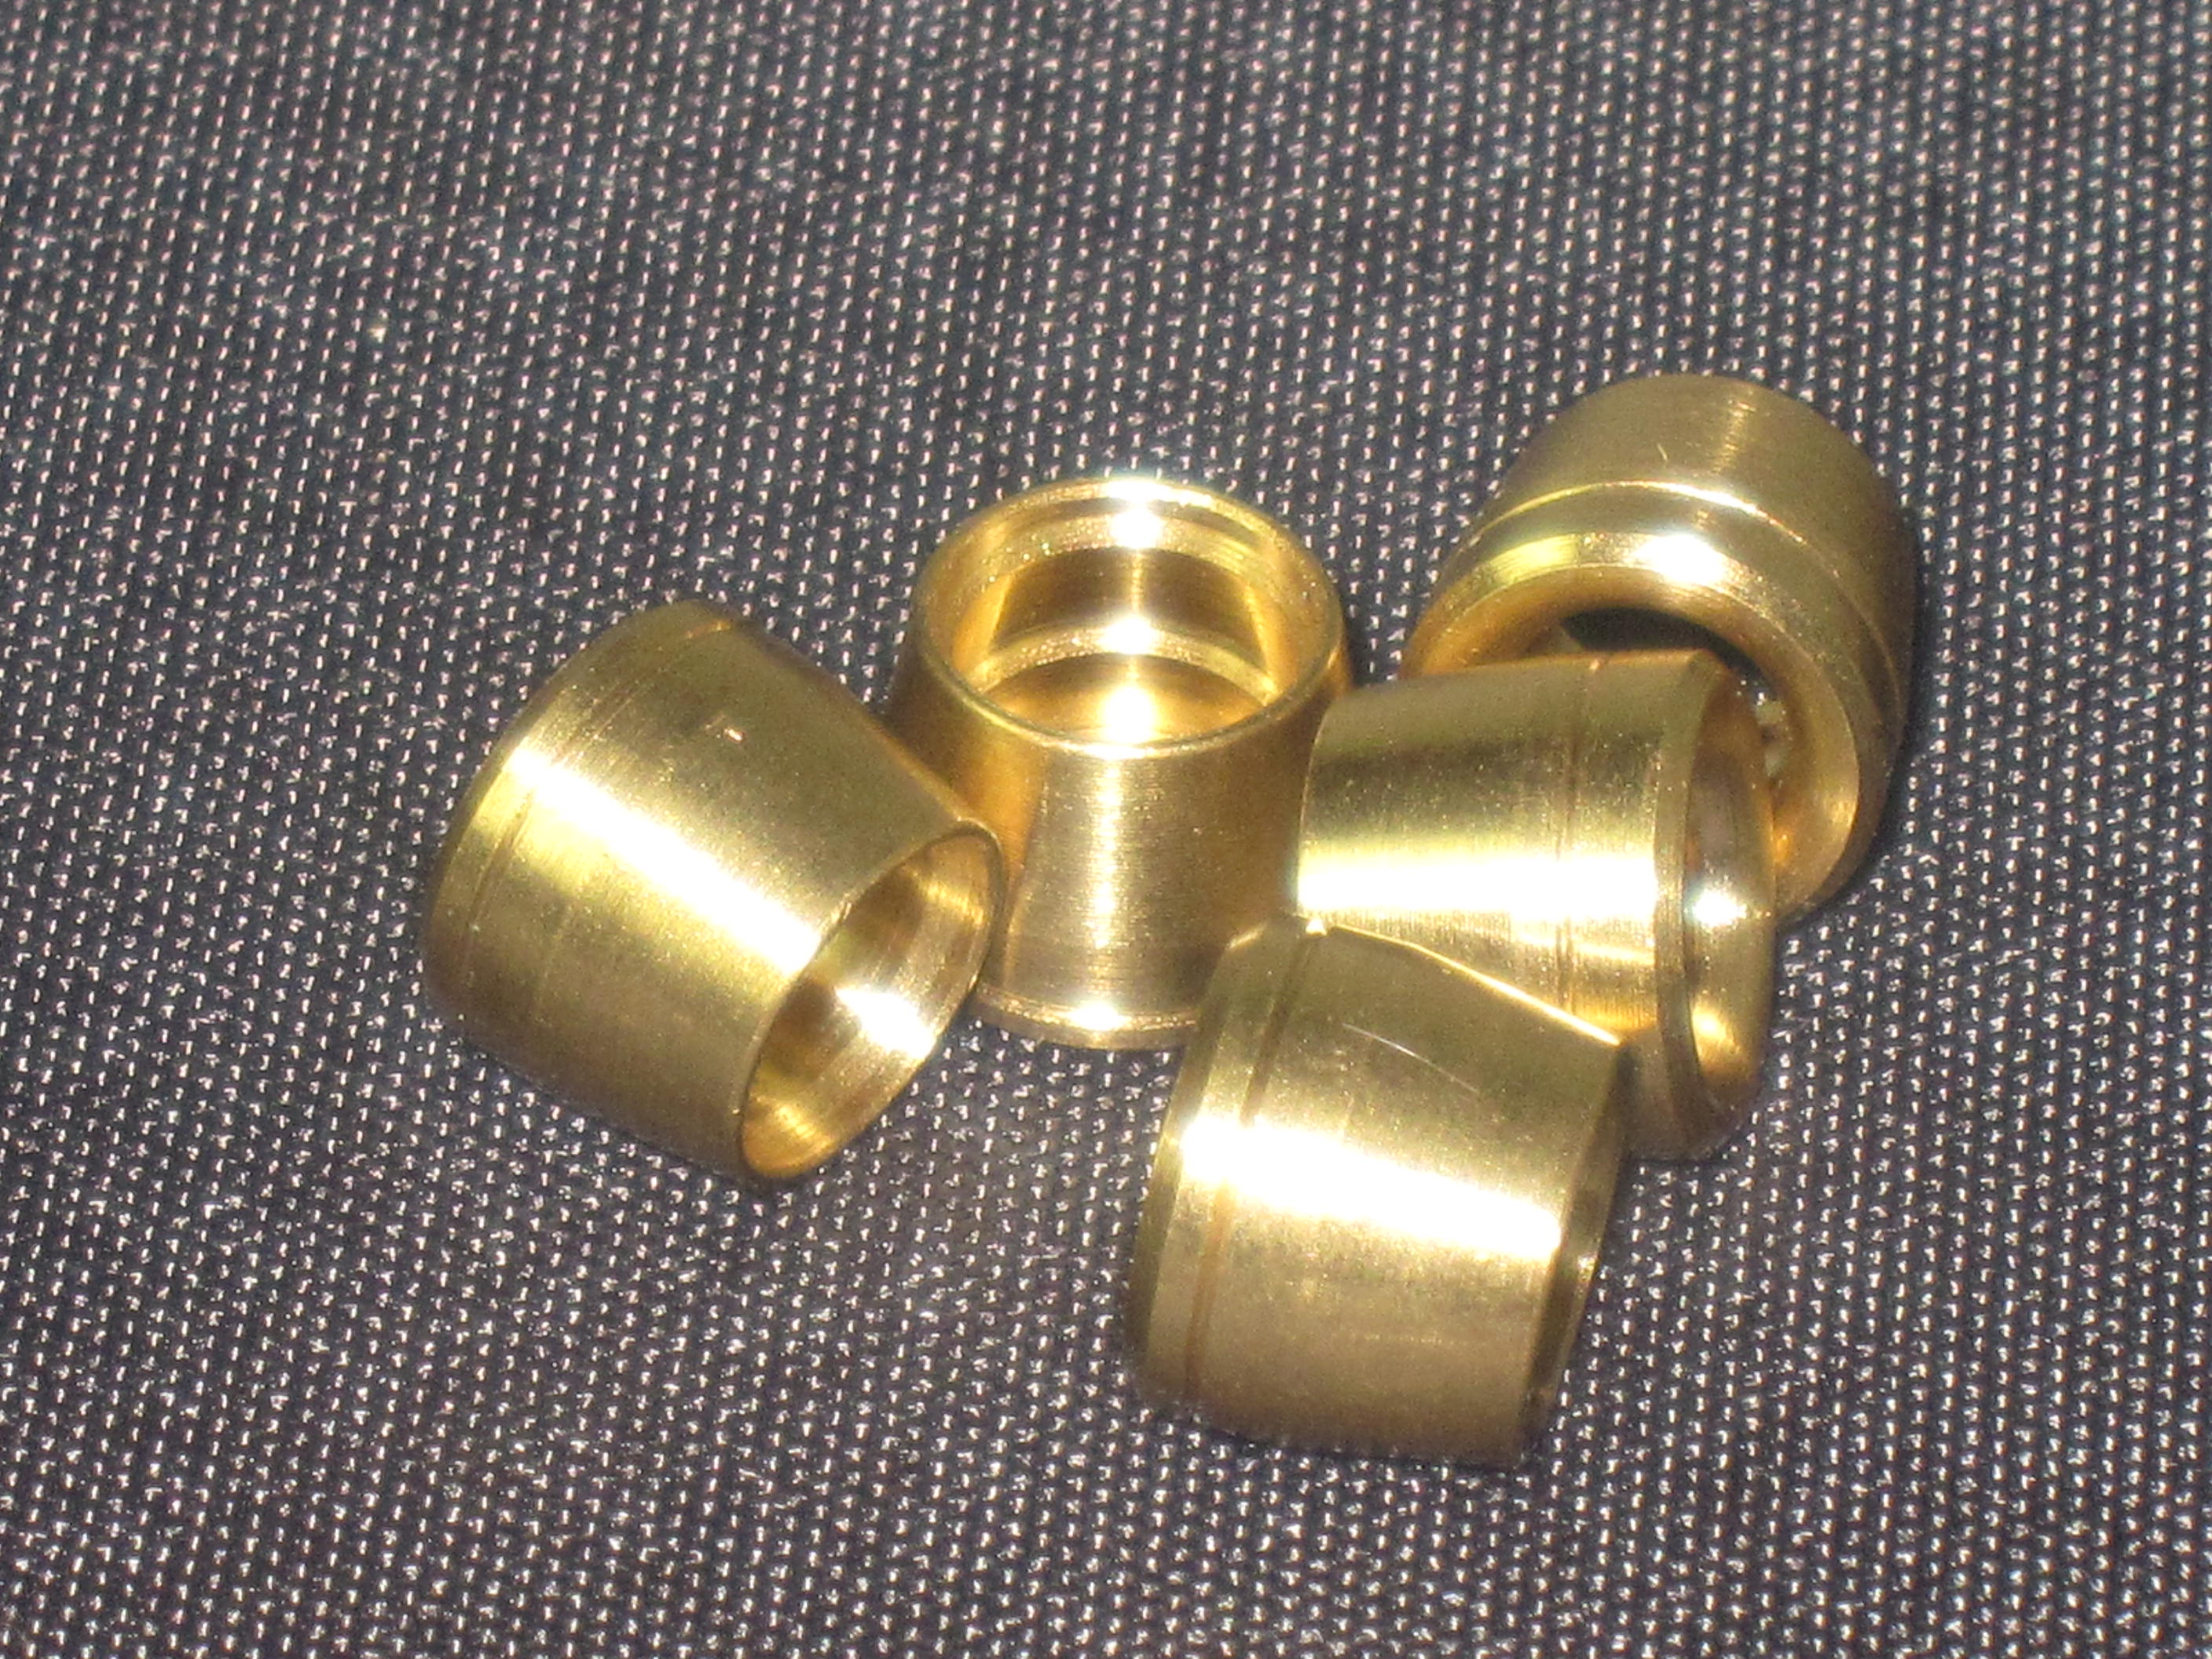 -2 REPLACMENT OLIVES (5PC) BRASS